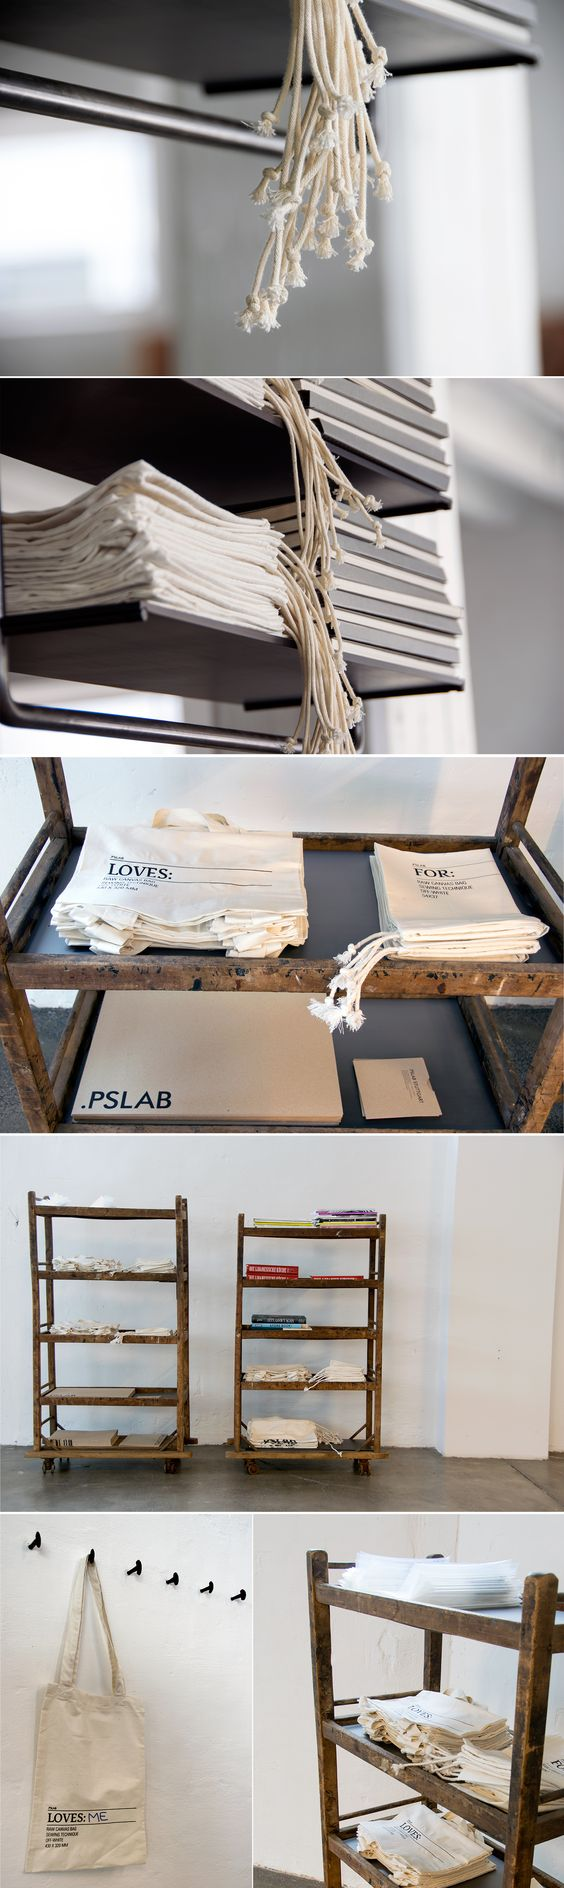 PSLAB LOVES - Customizable fabric bag series..jpg